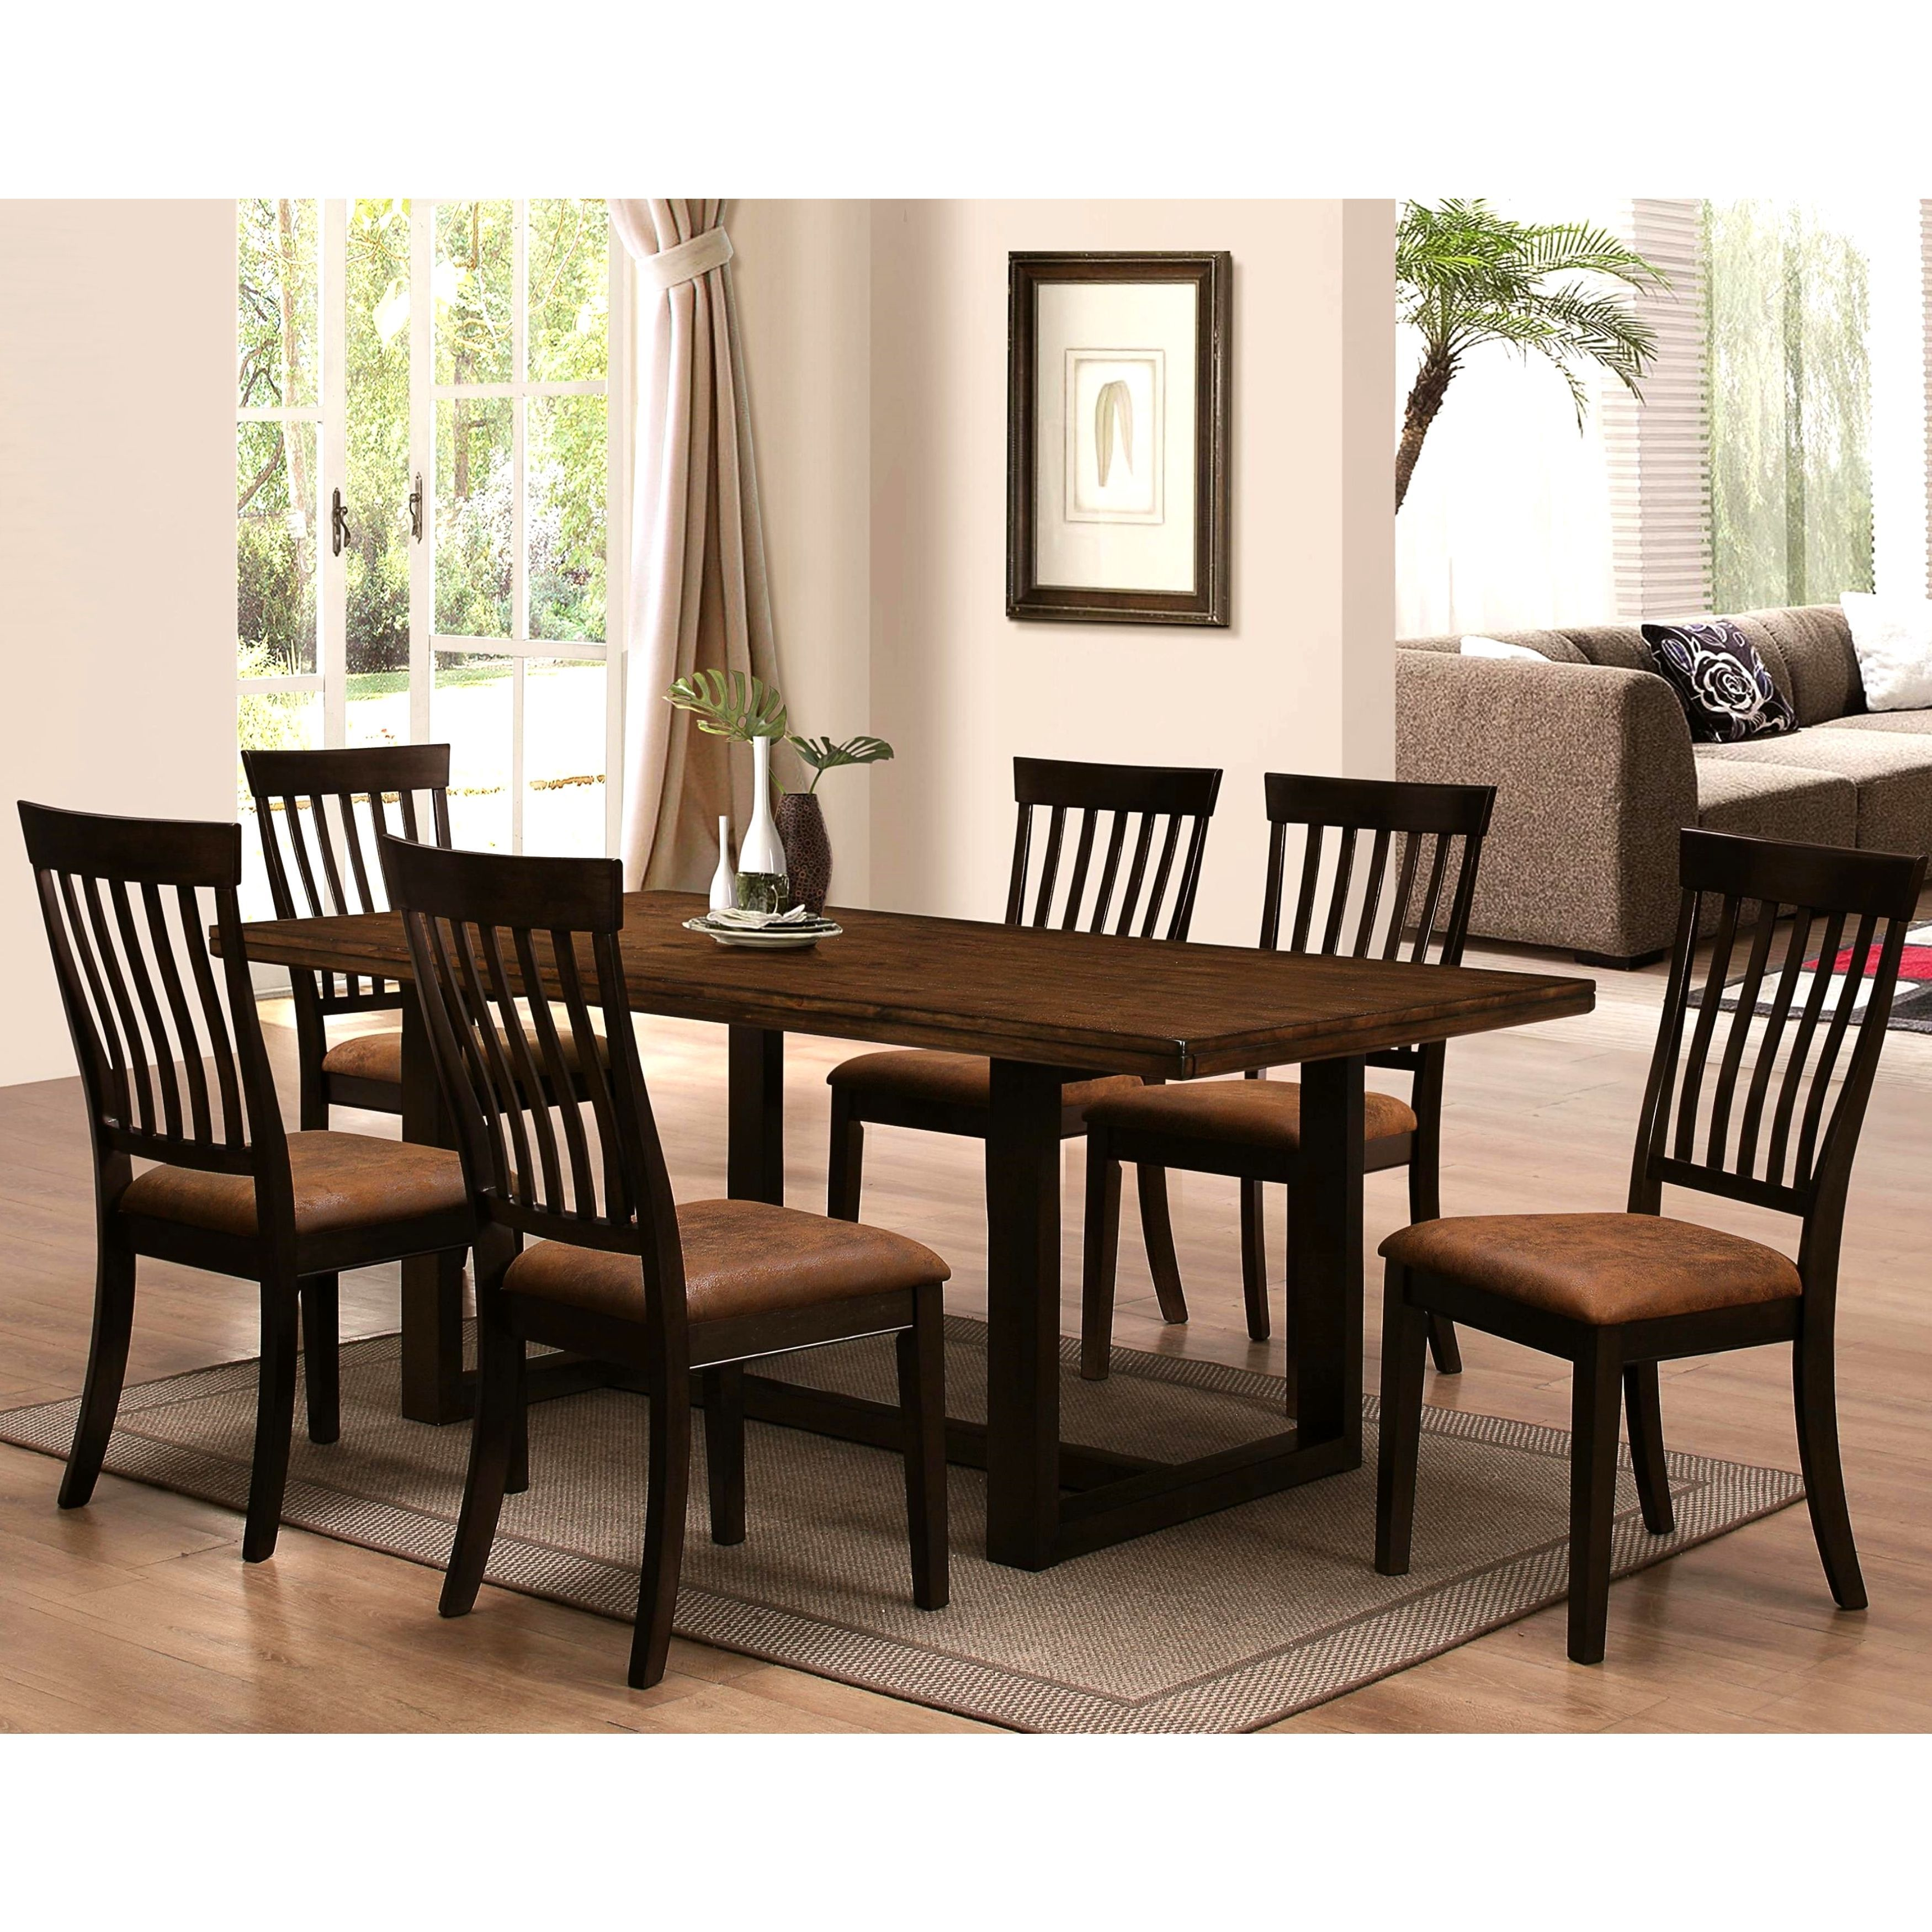 Sen Remo Rustic Two Tone 7 Piece Dining Set (1 Table, 6